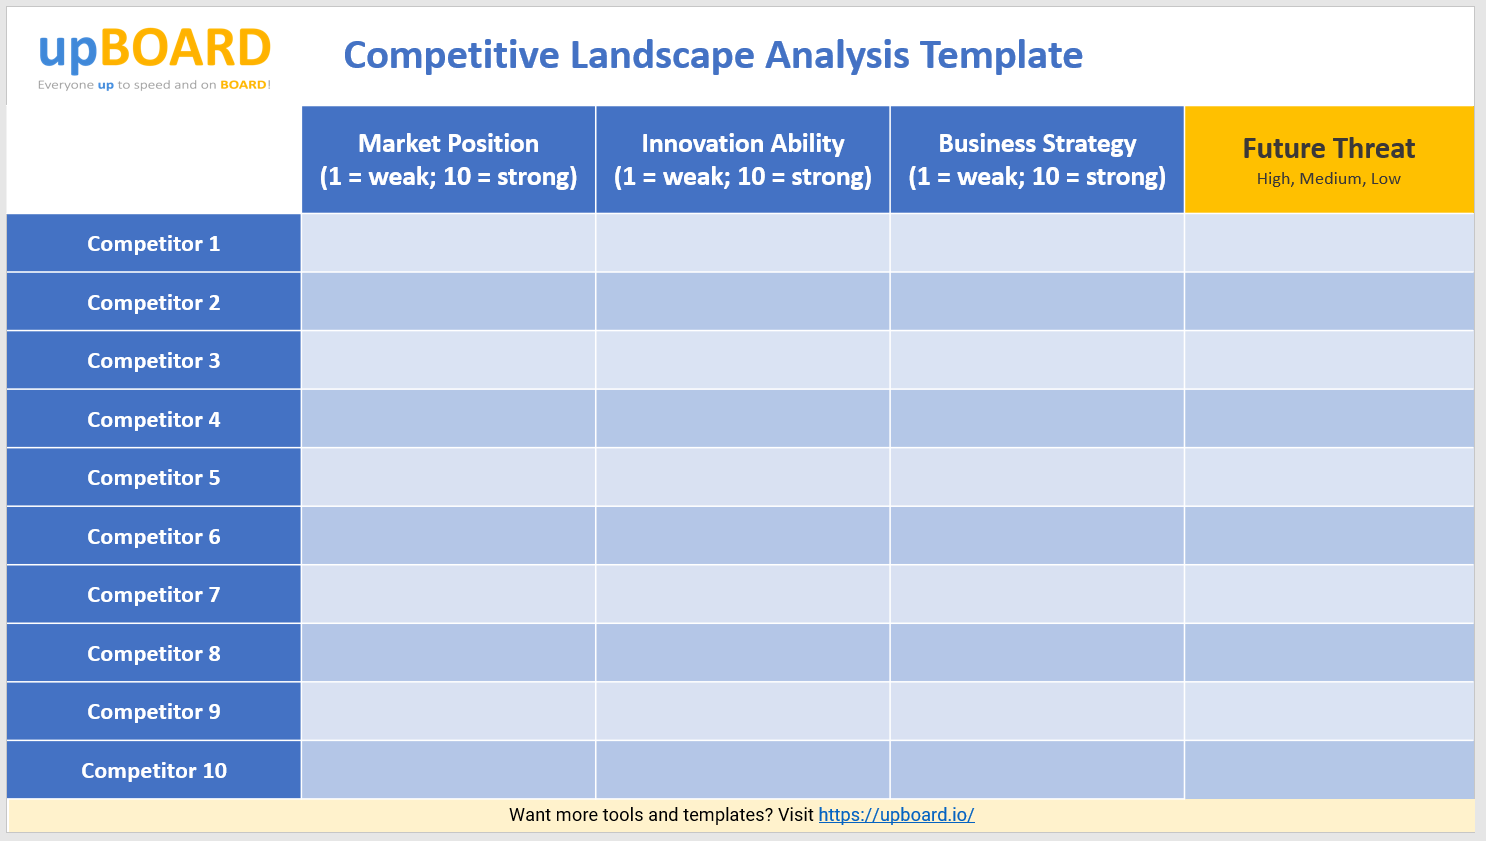 Competitive Landscape Analysis Template - Free PowerPoint Tool